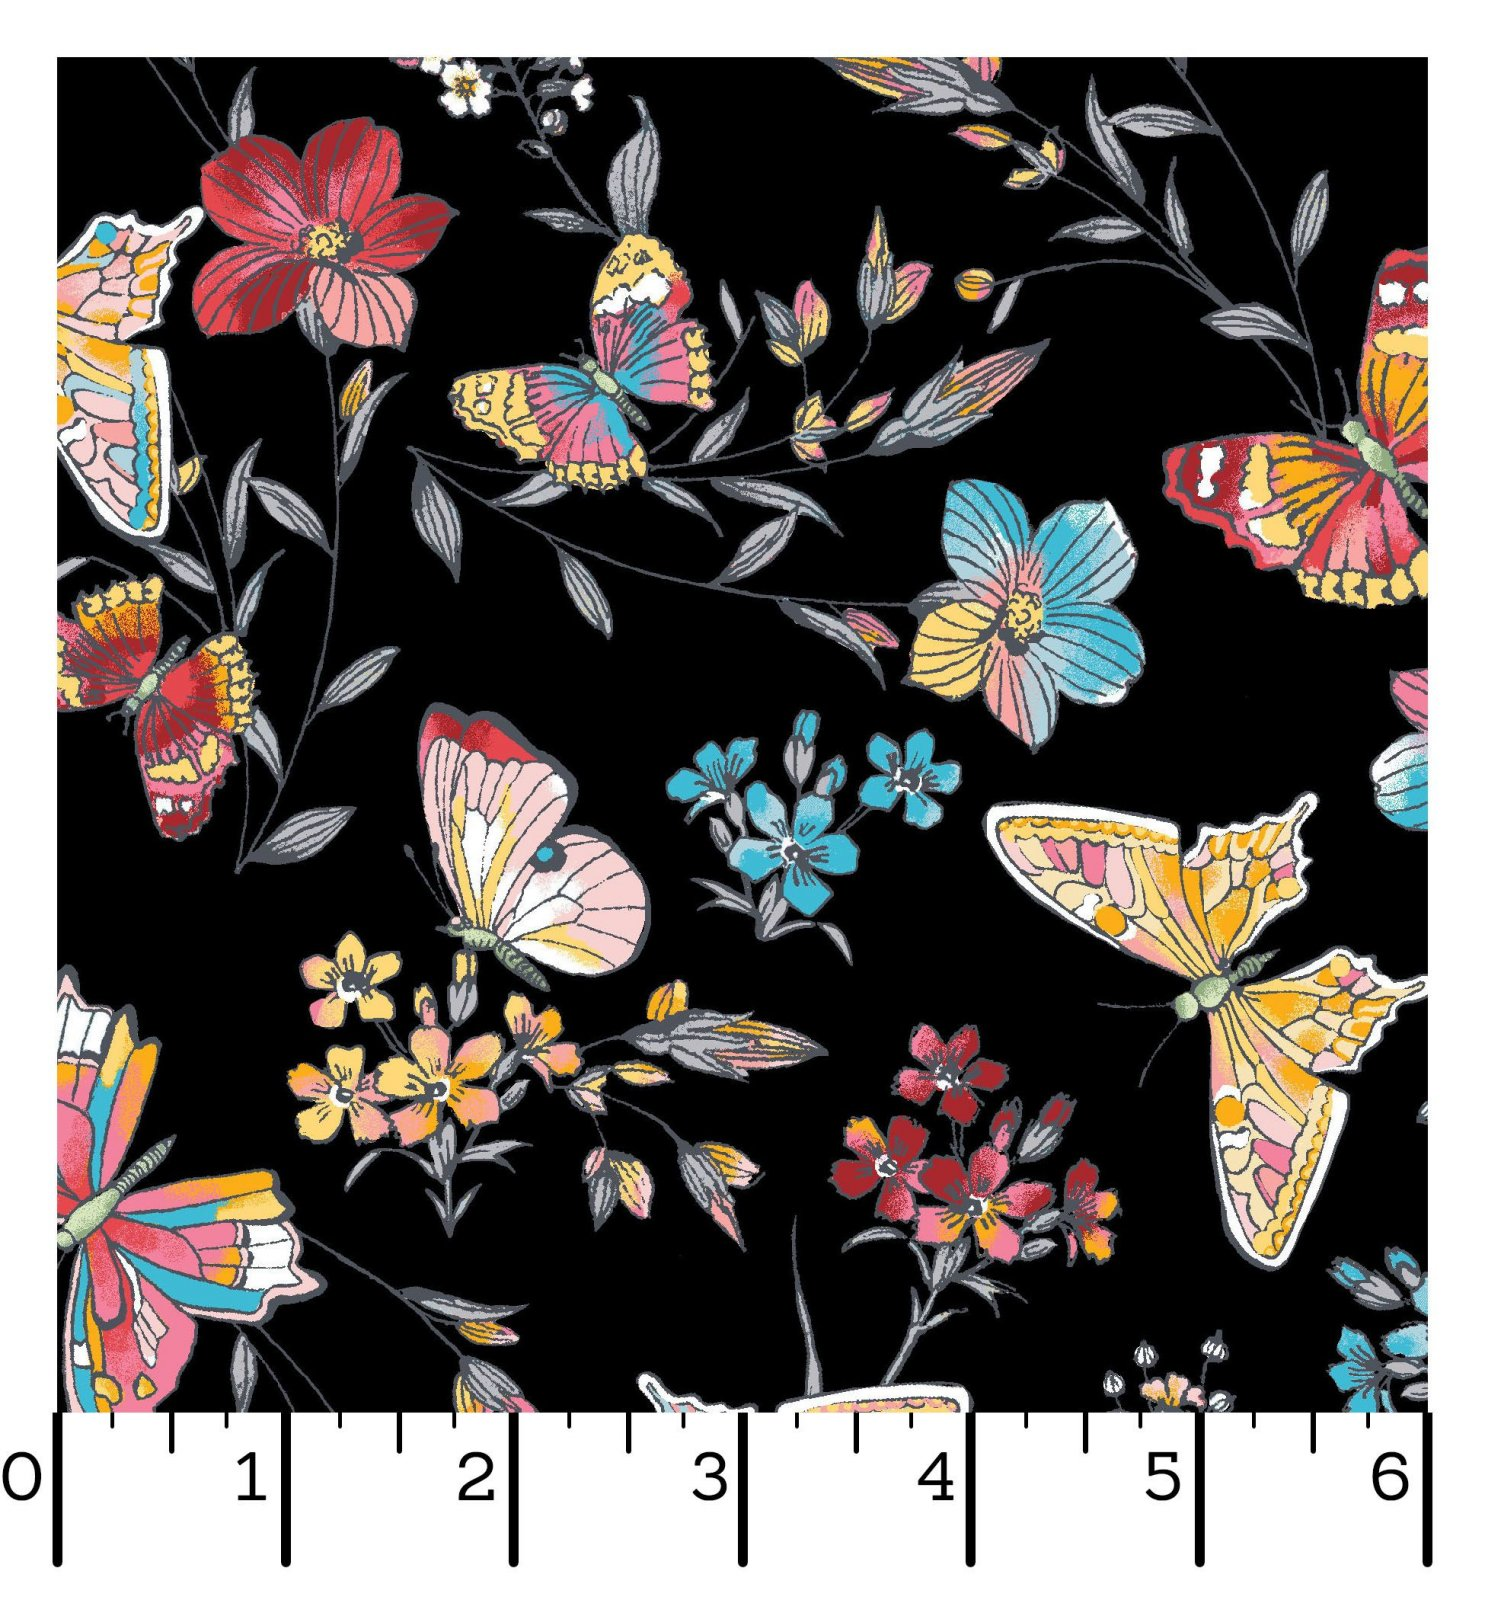 EESC-D10004 J - MEADOW EDGE BY MAYWOOD STUDIO BUTTERFLIES BLACK - ARRIVING IN MAY 2021